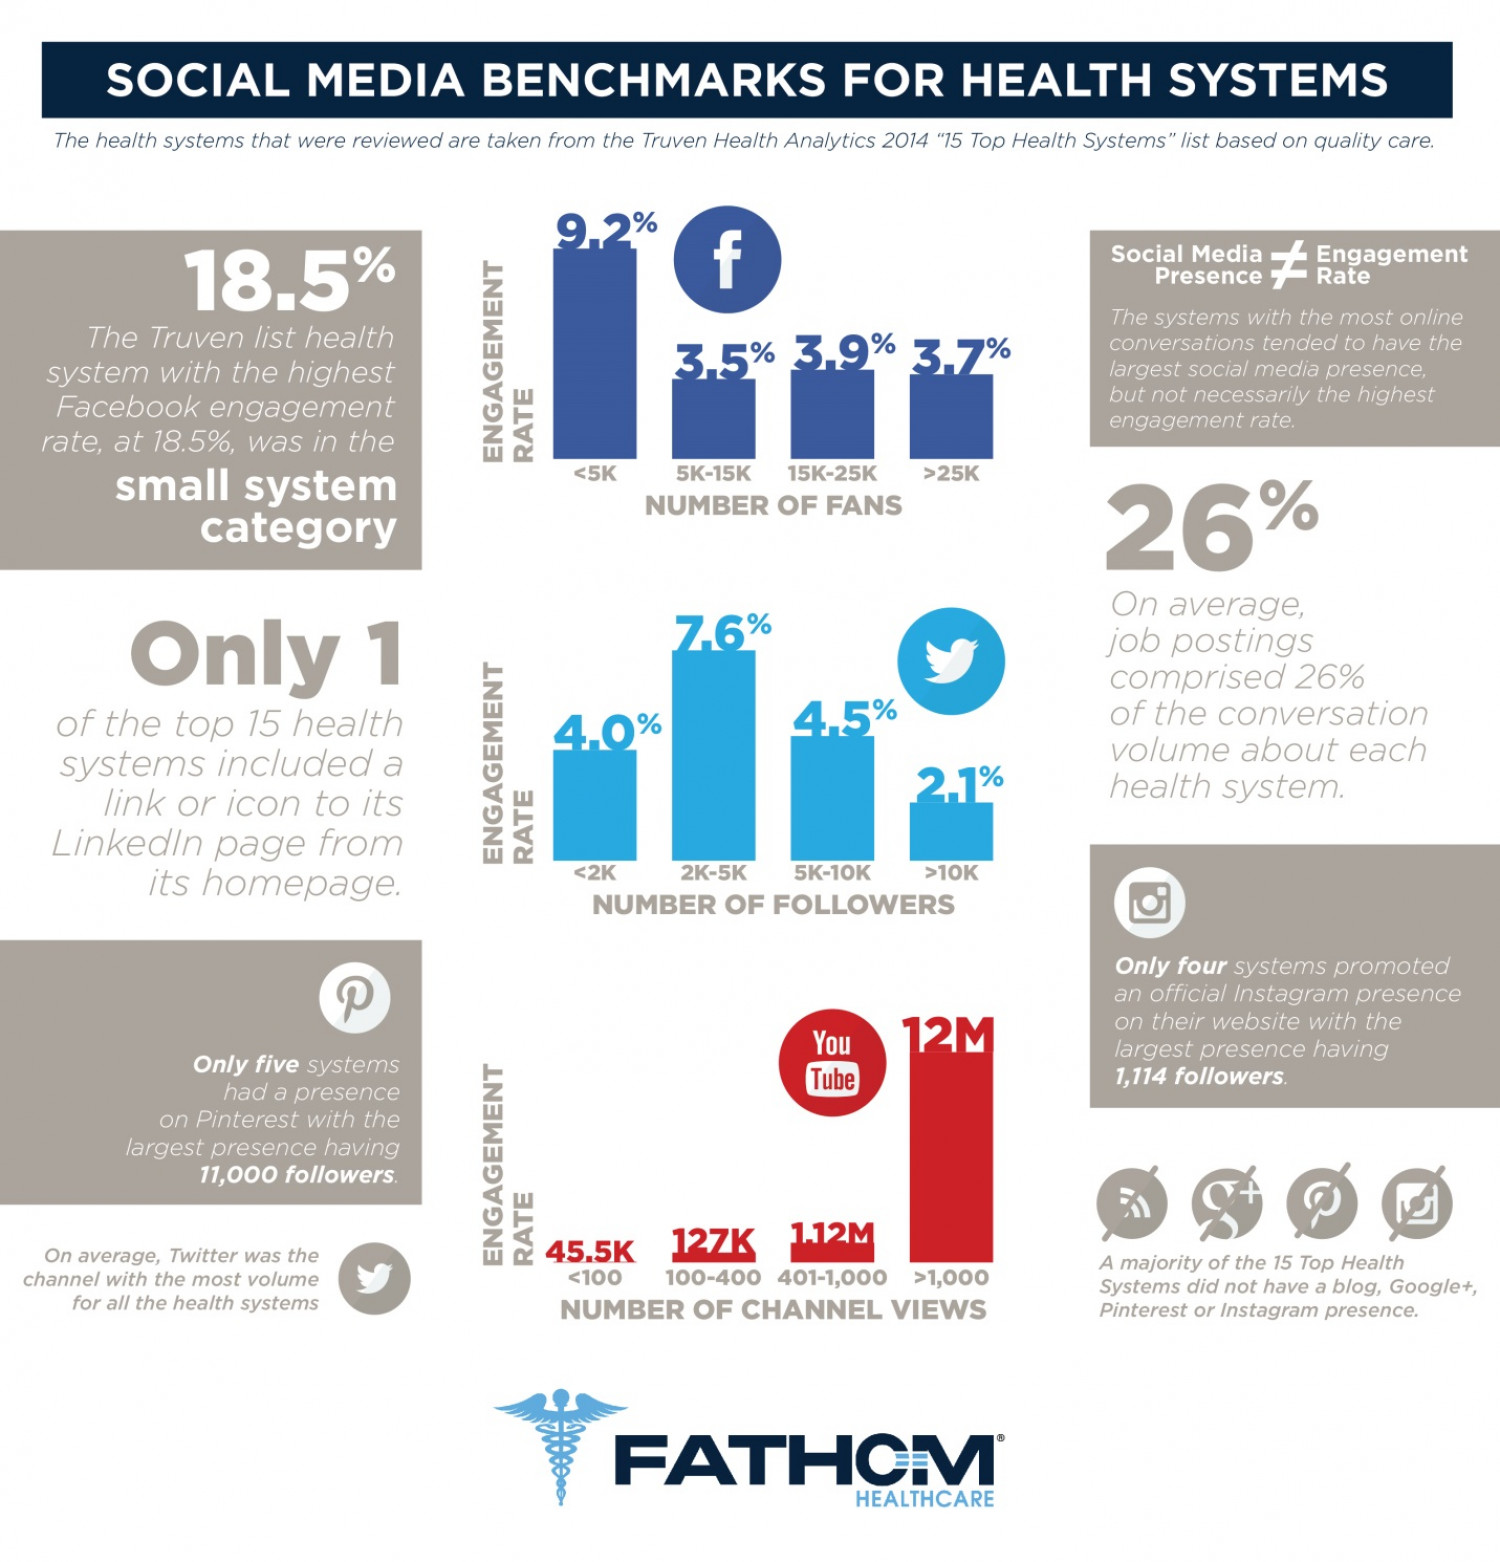 Social Media Benchmarks For Health Systems Infographic